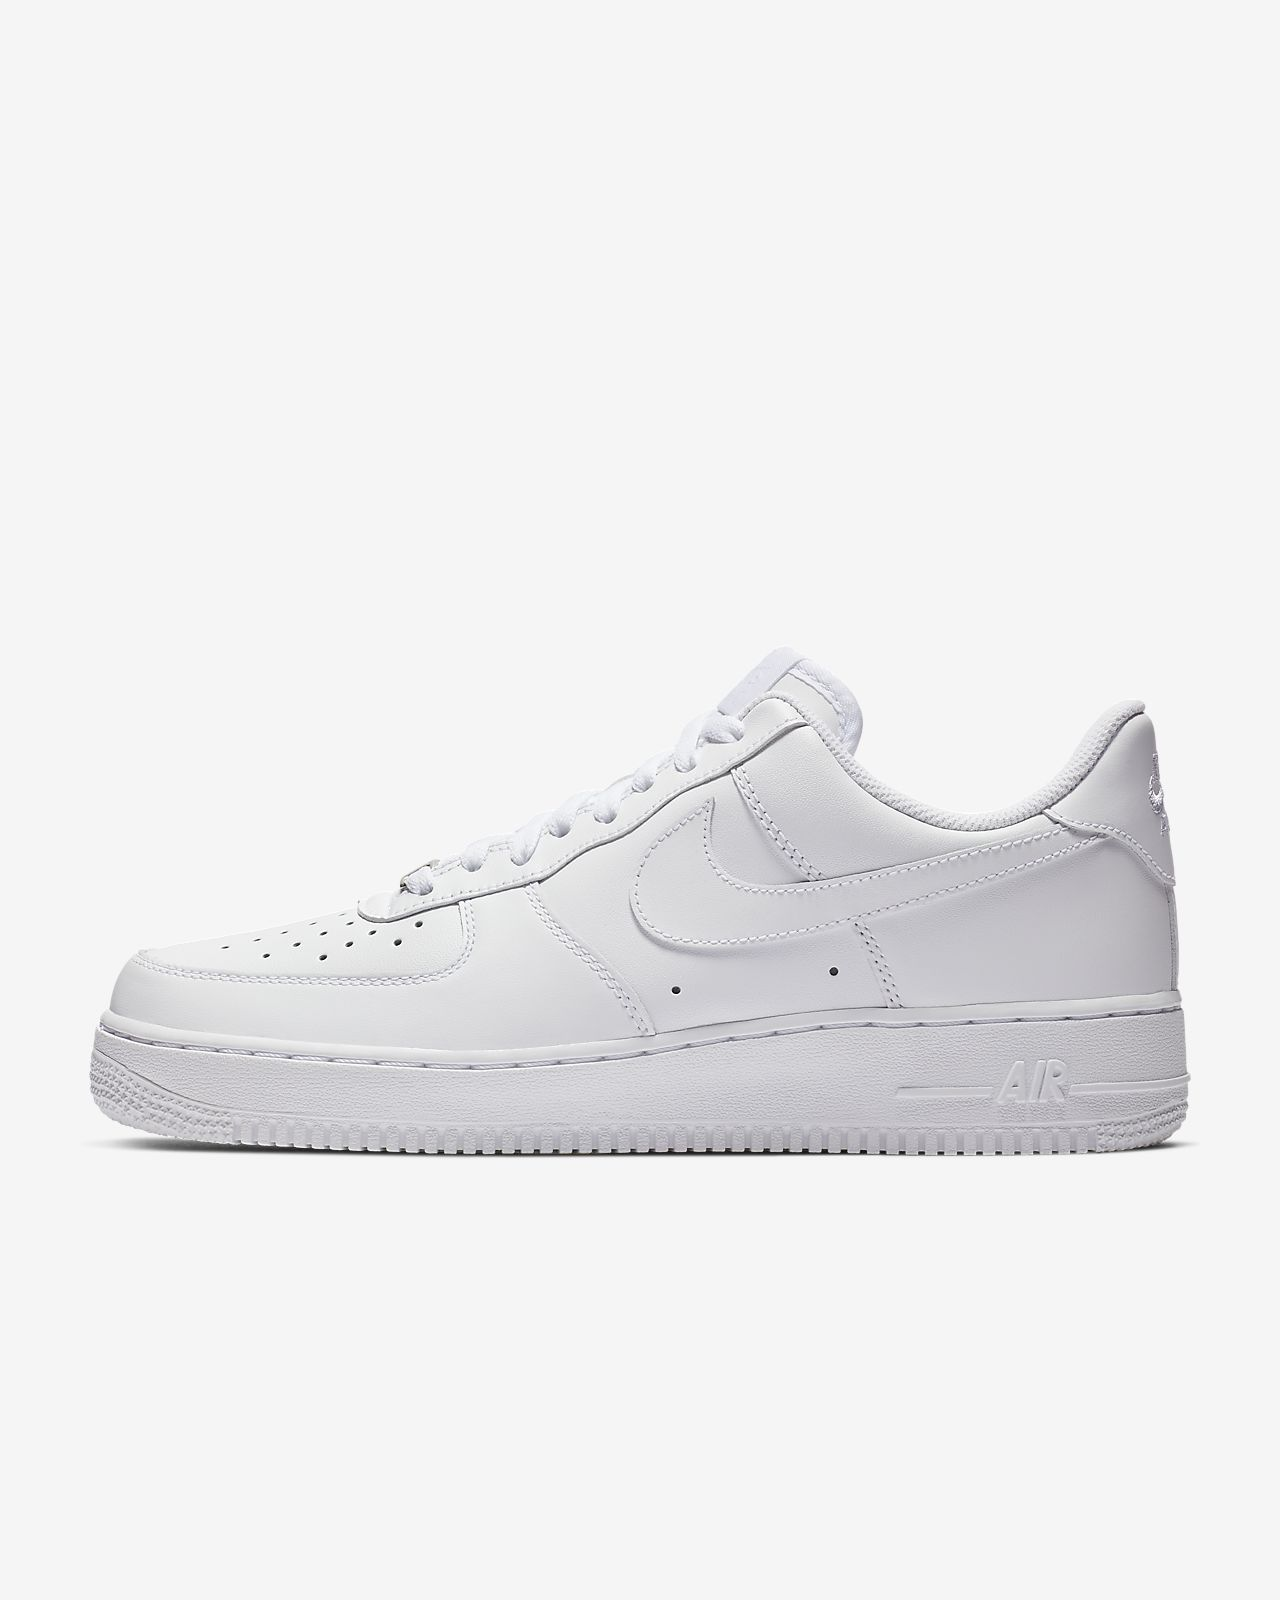 dfc2cf6c0b245b Nike Air Force 1  07 Women s Shoe. Nike.com GB